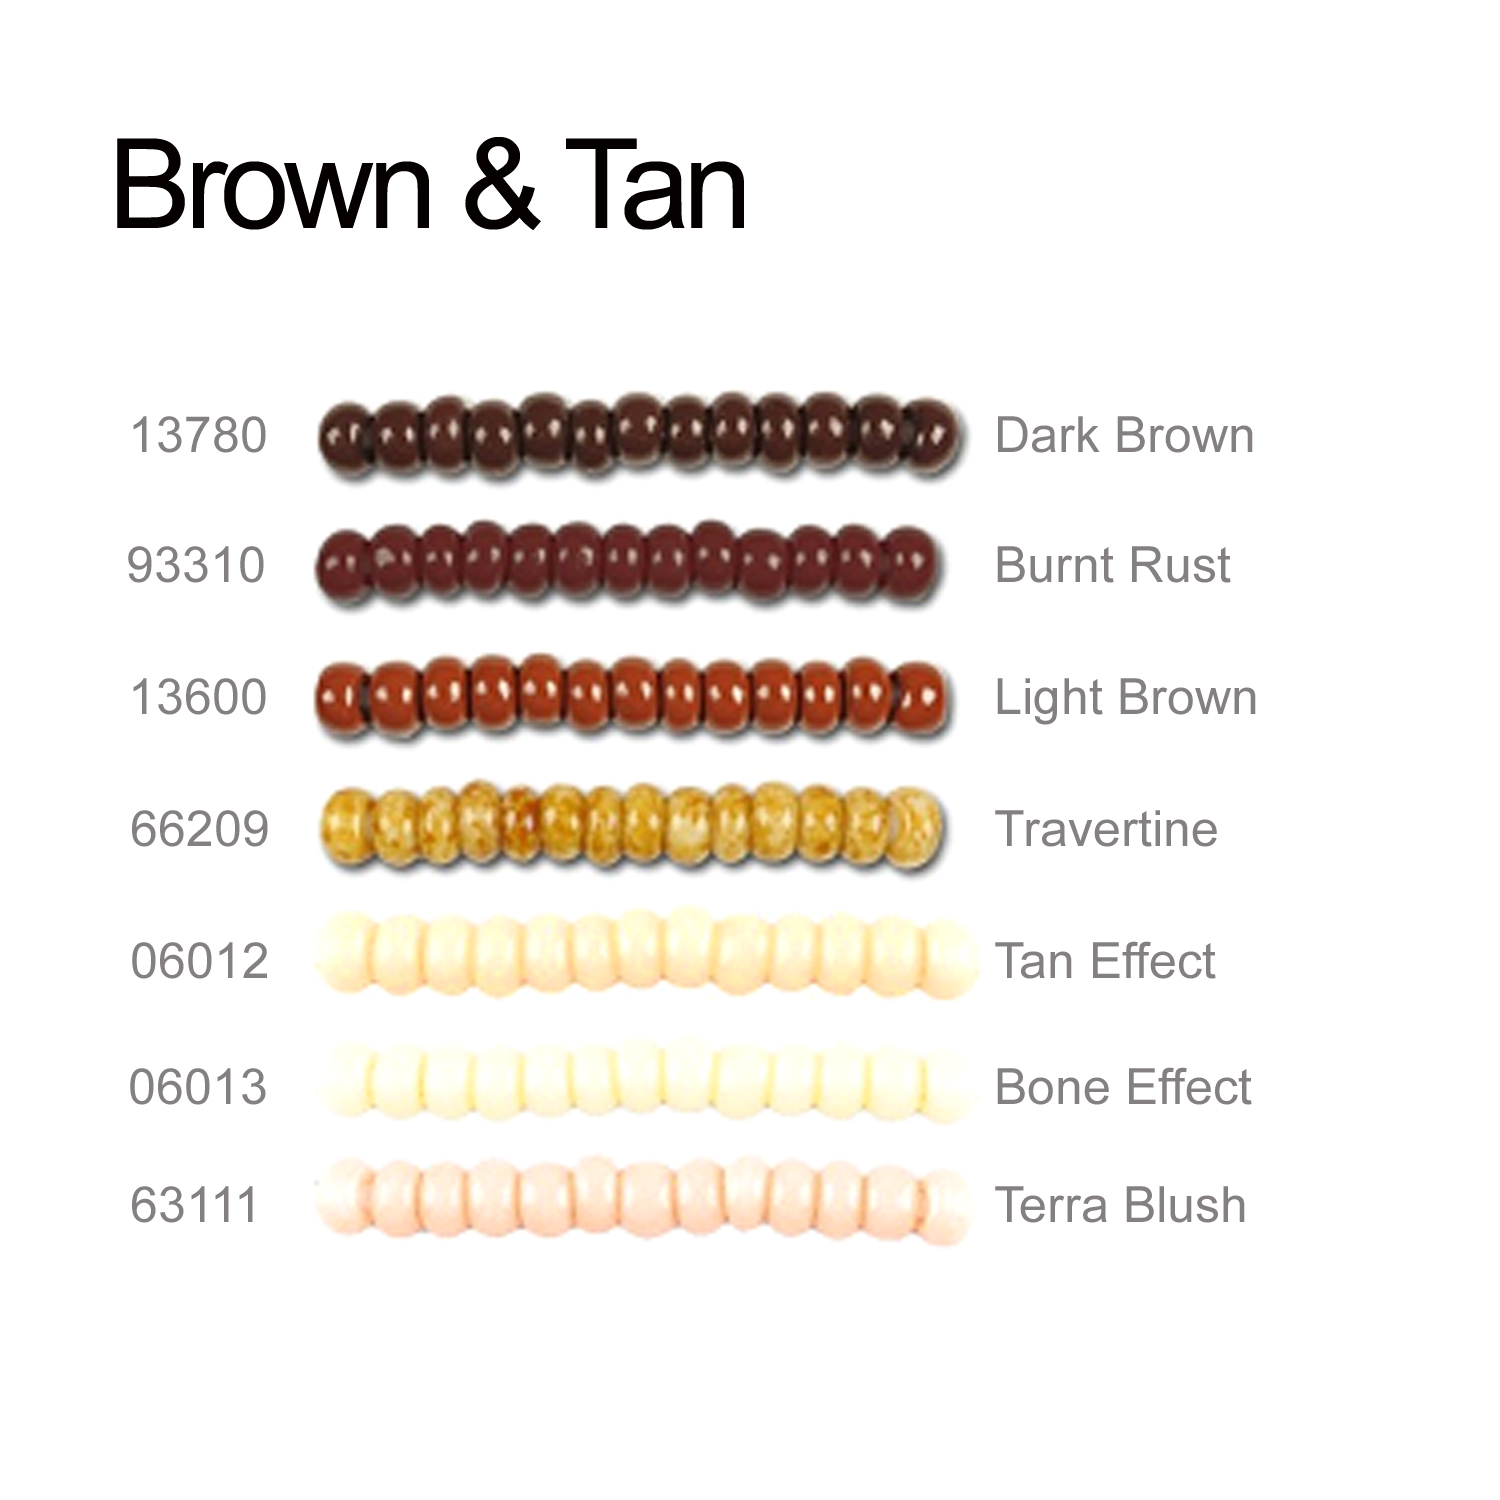 Brown and Tan Seeds Beads